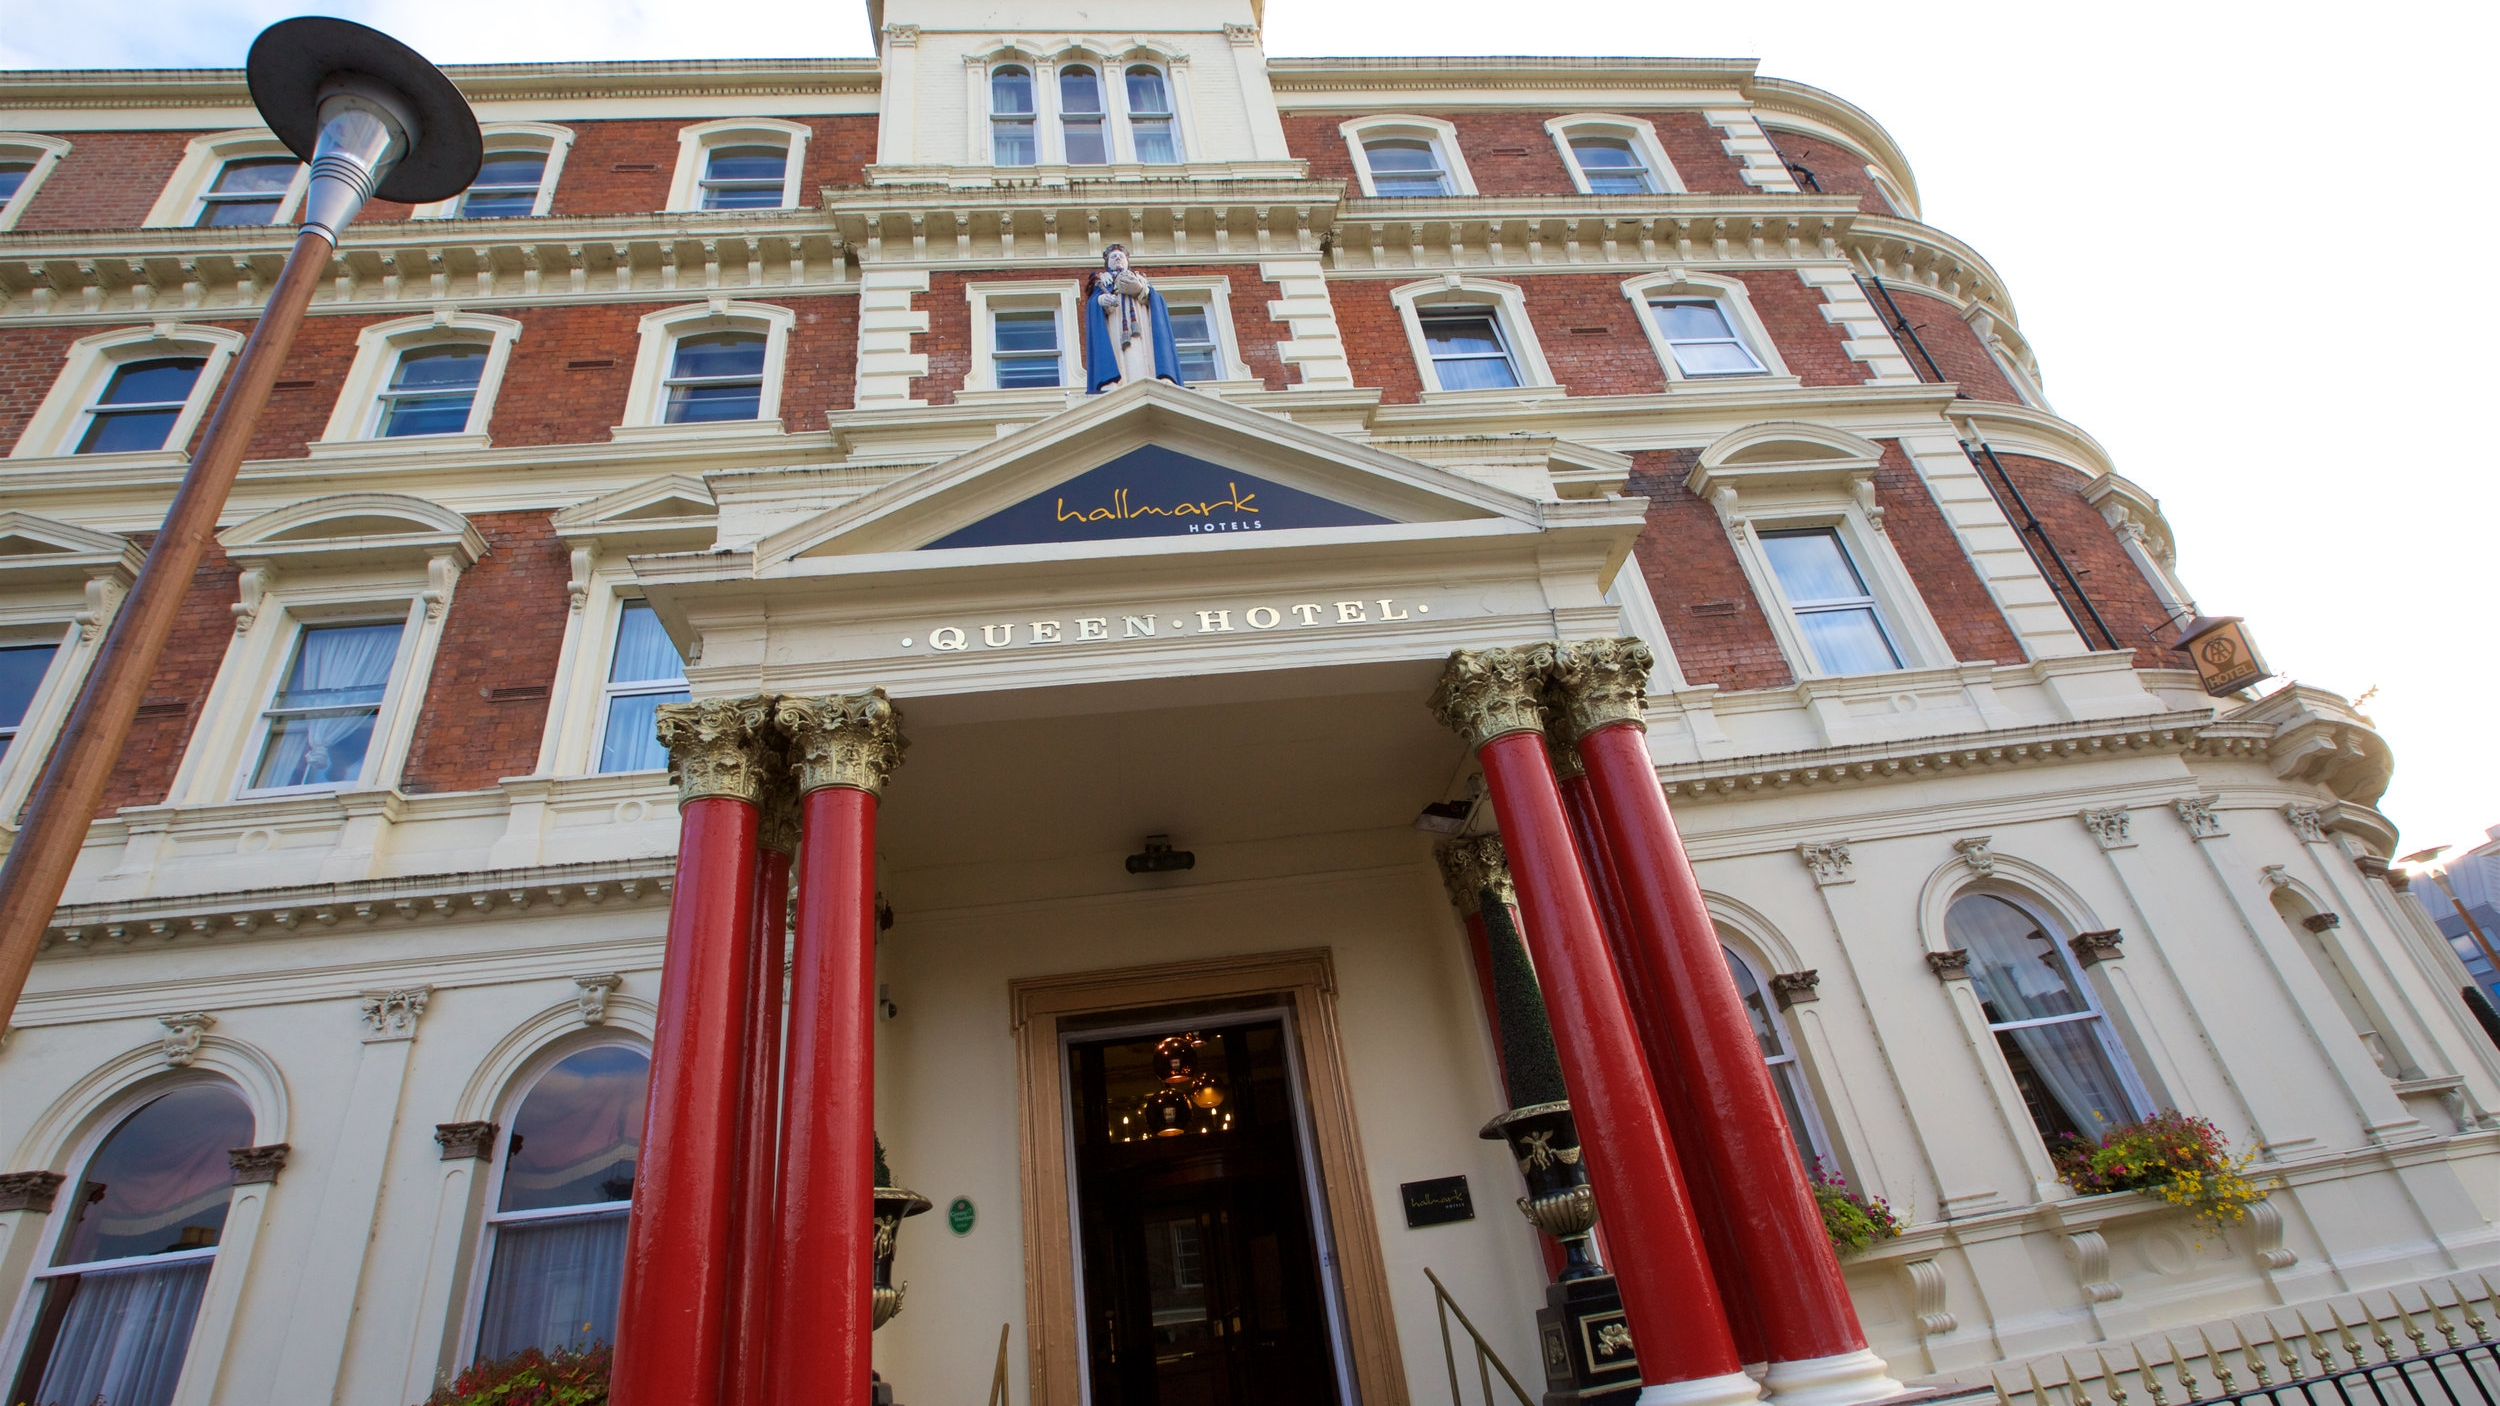 The queen hotel chester - 20th October 2019 4nts